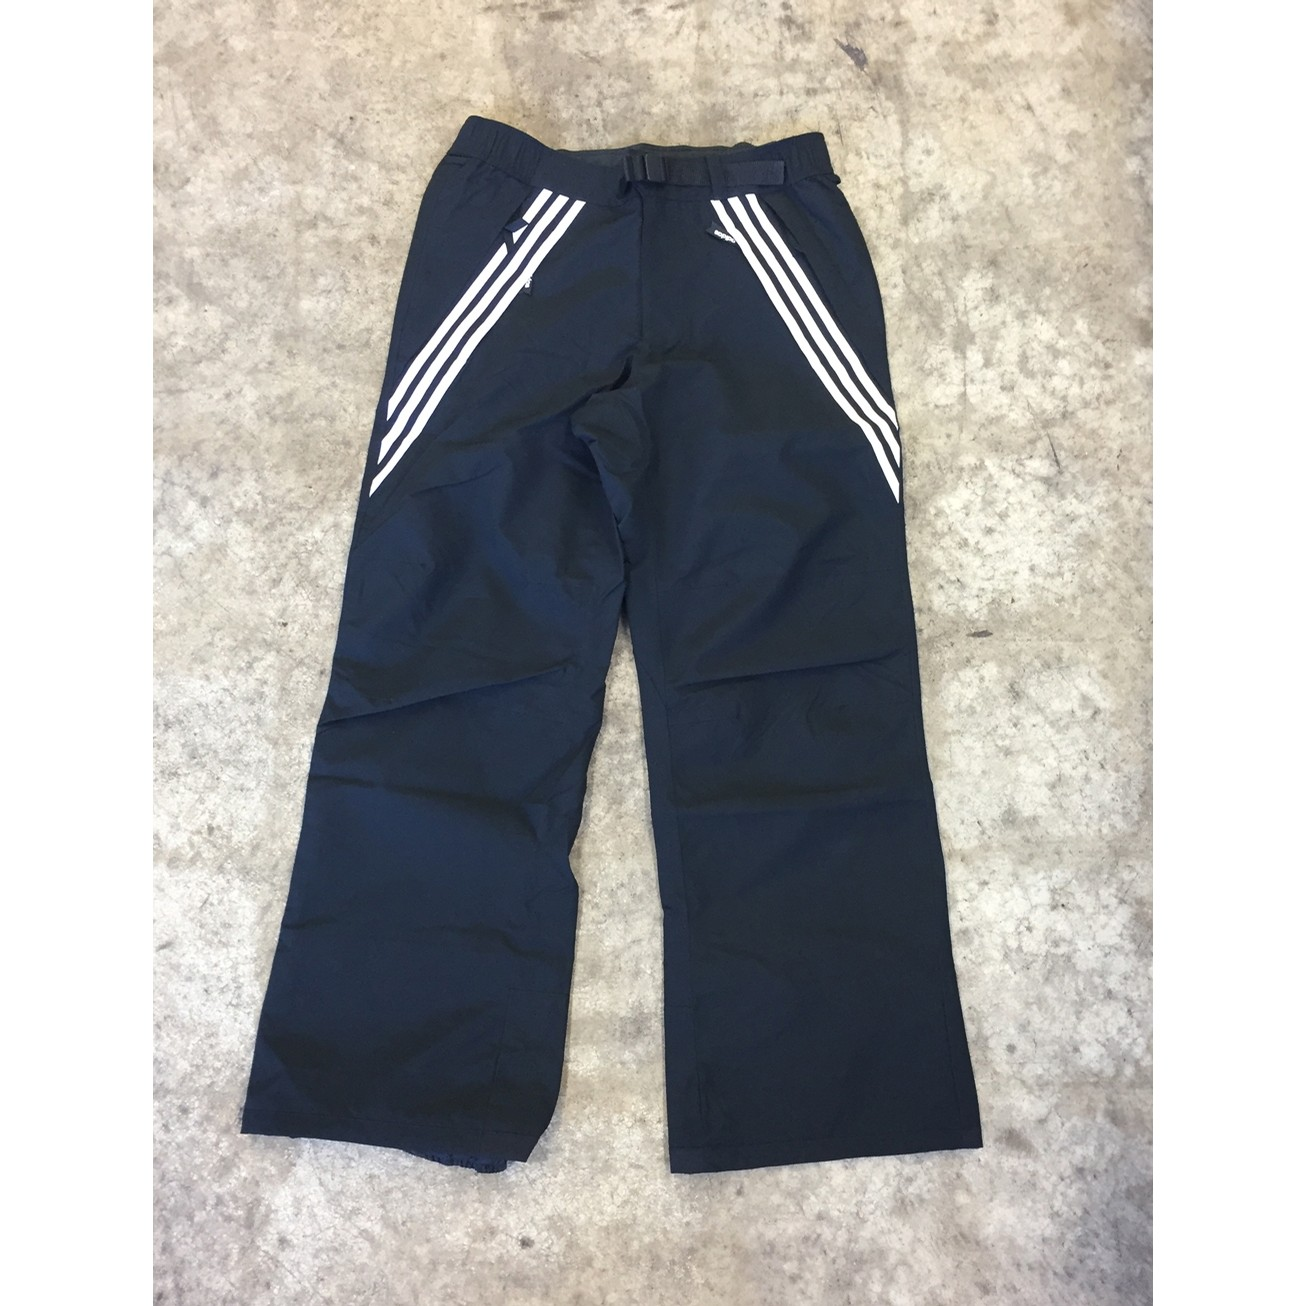 Riding Pant (blk/wht)